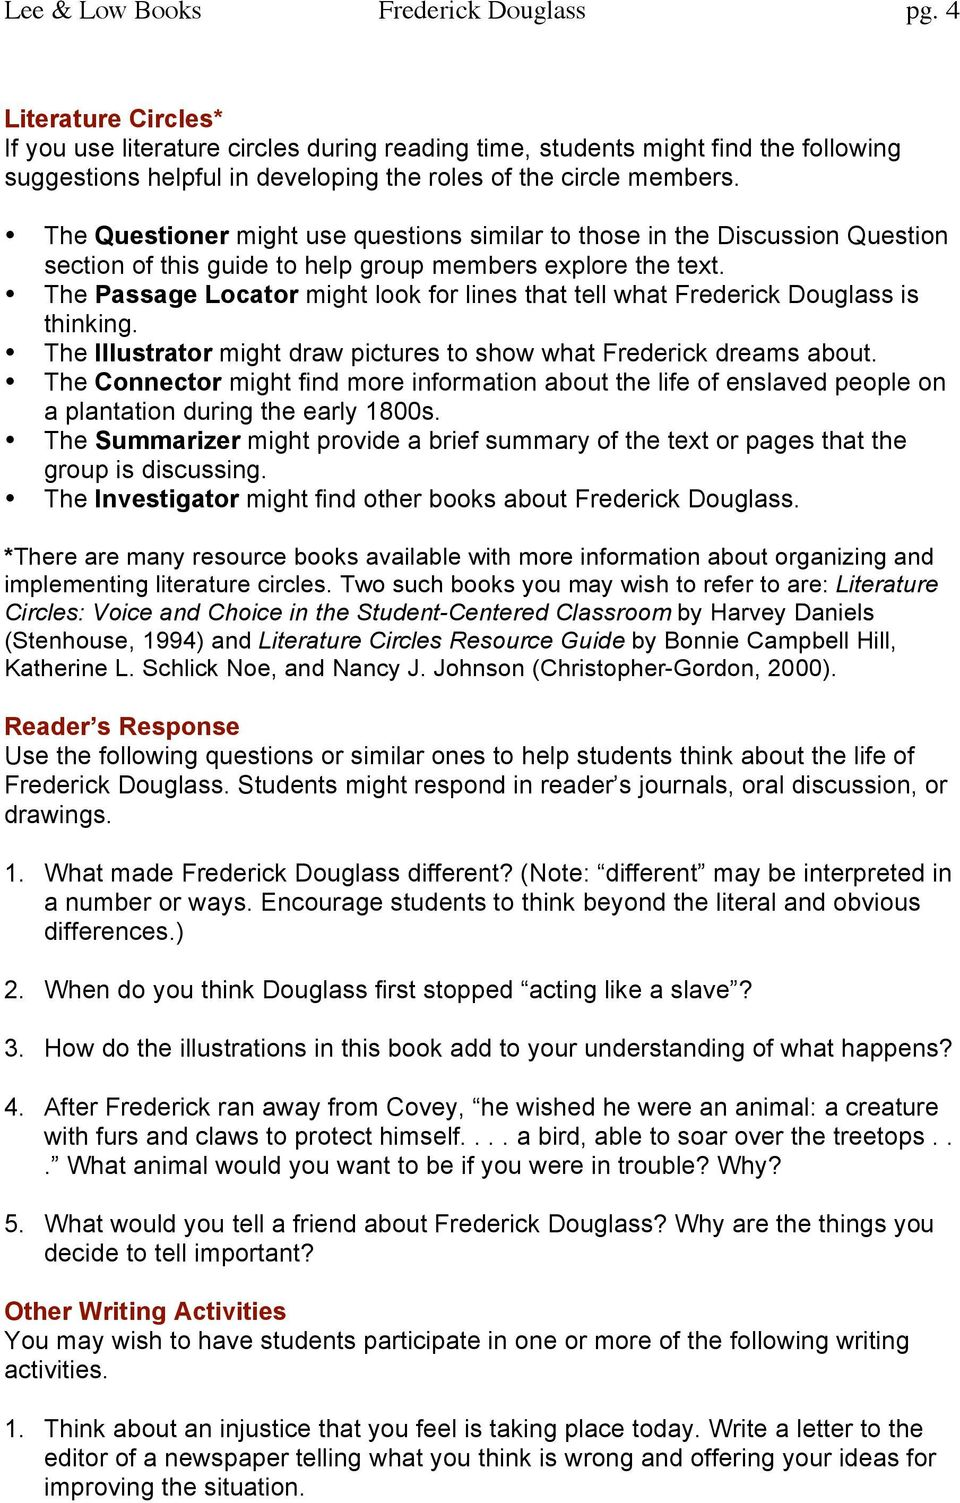 The Questioner might use questions similar to those in the Discussion Question section of this guide to help group members explore the text.